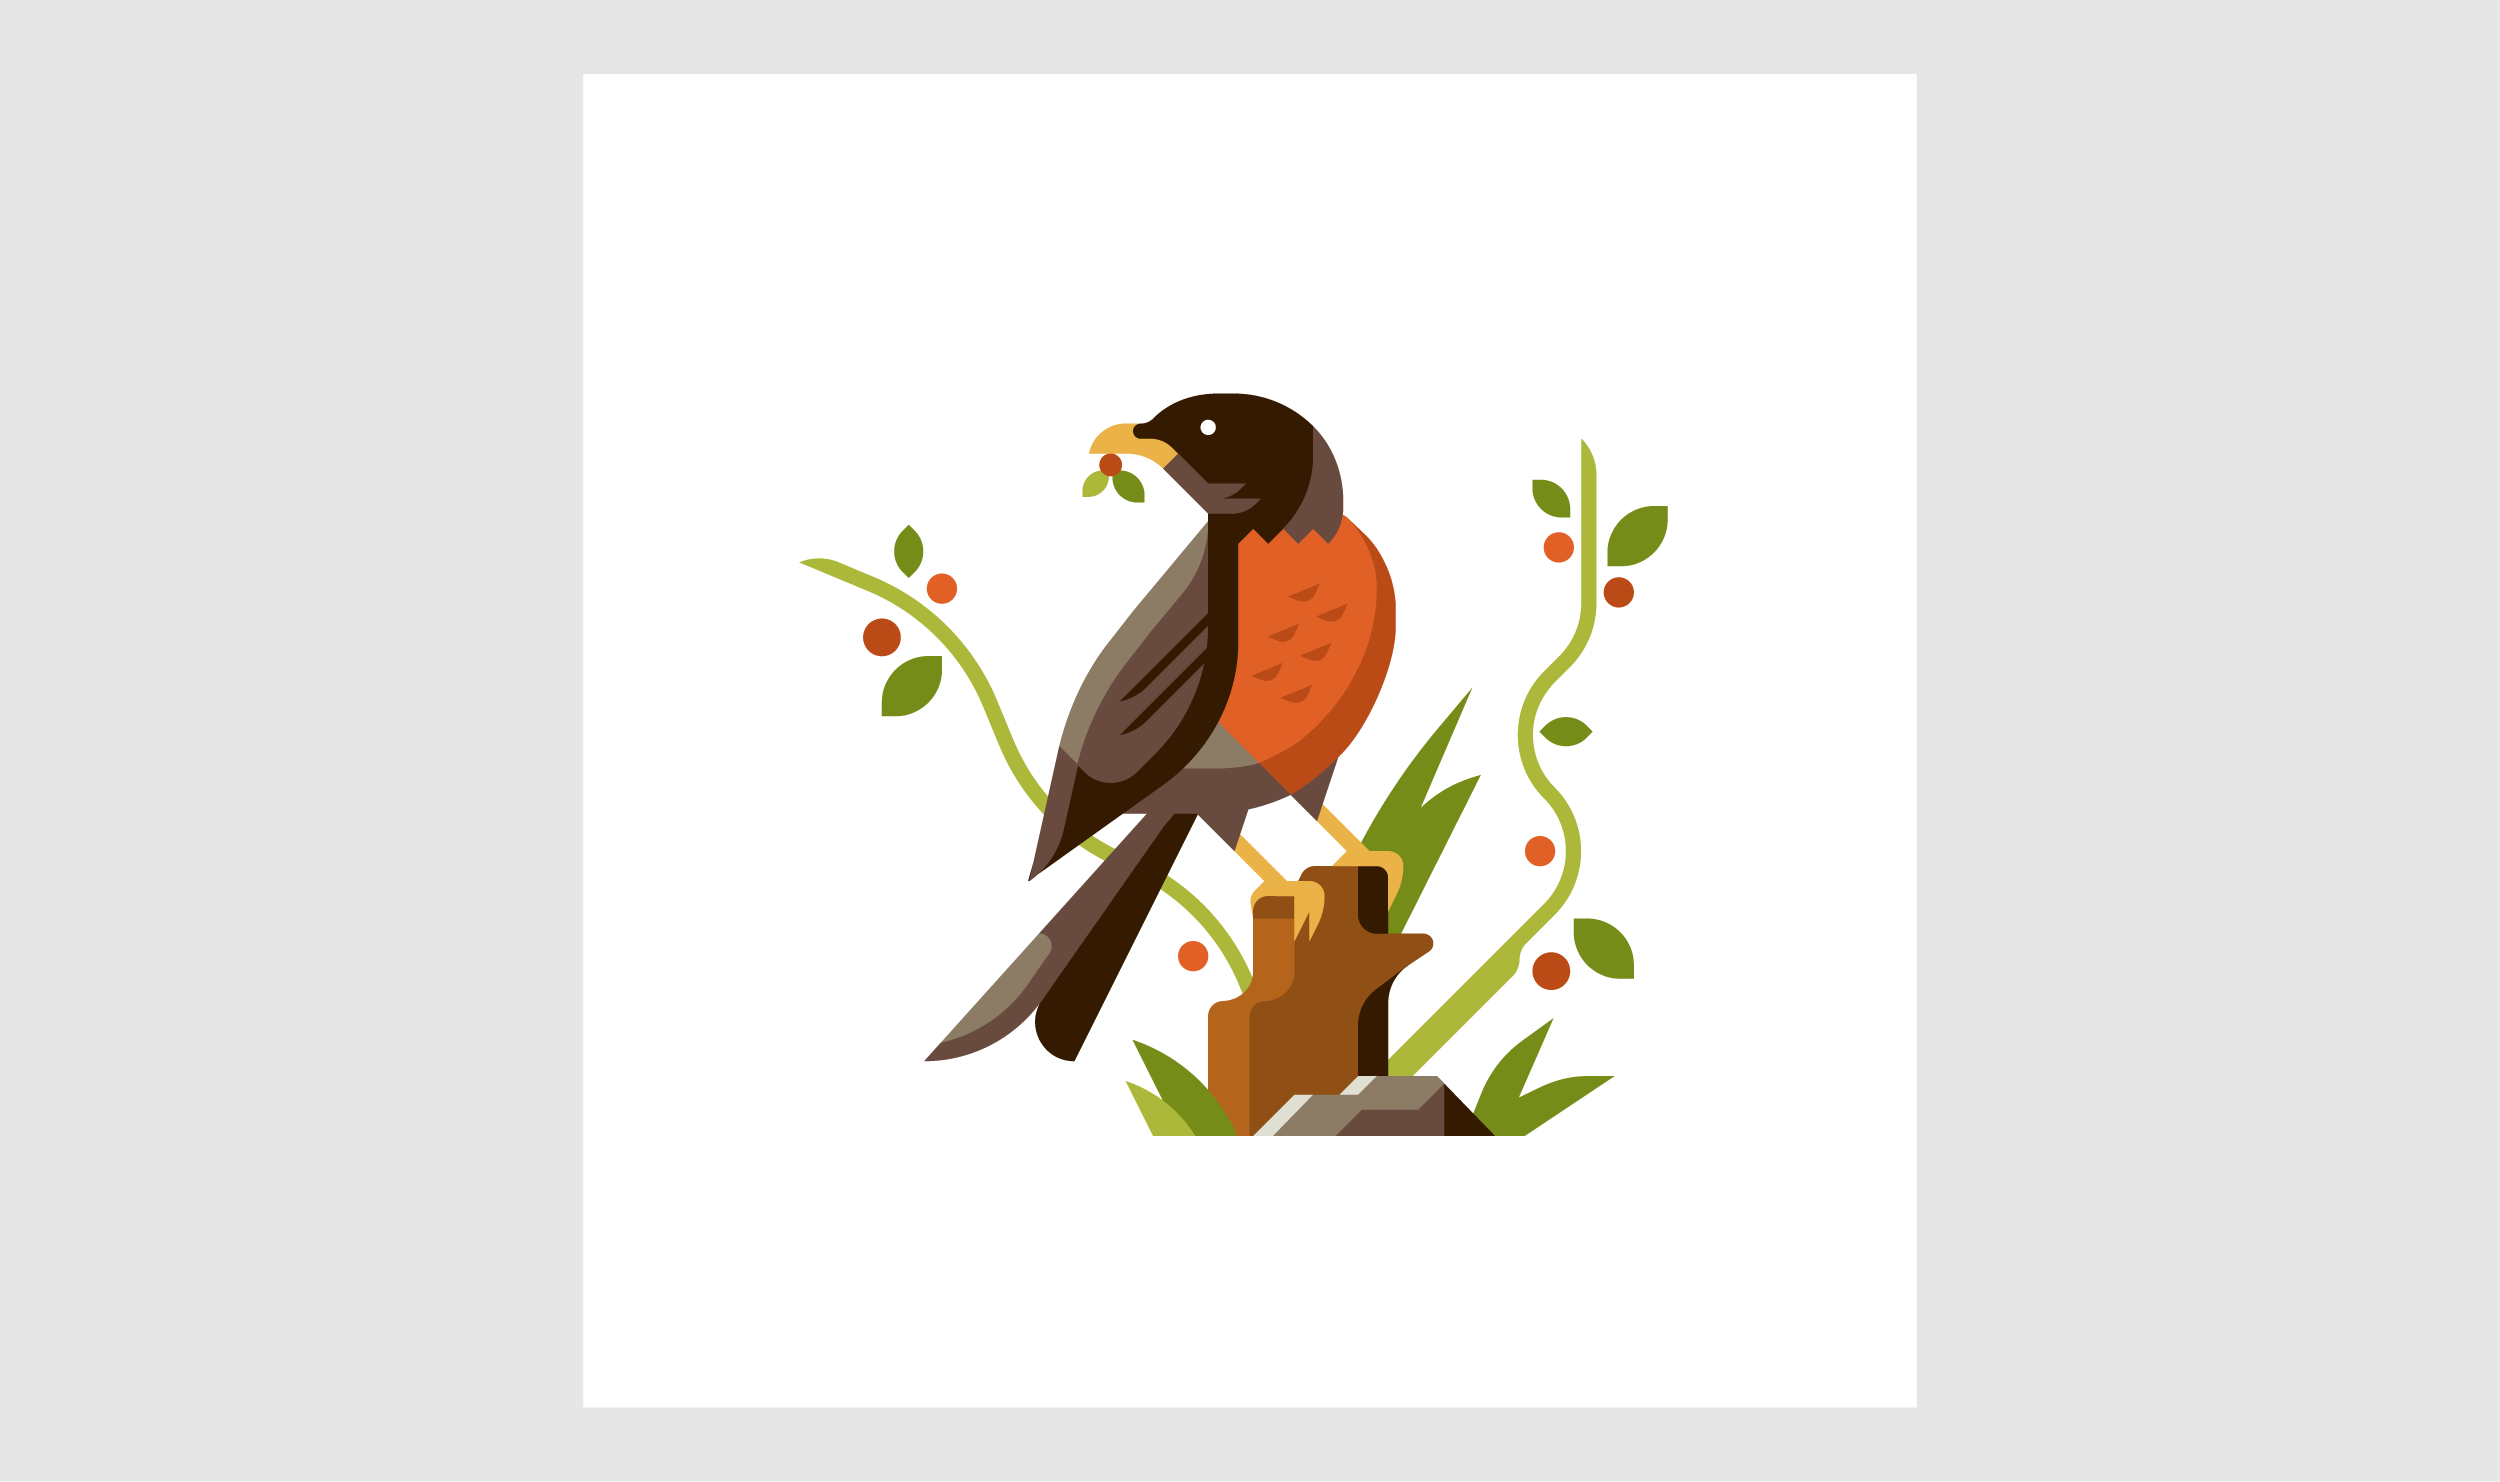 Robin illustration by Matt Anderson and Canopy Design and Illustration